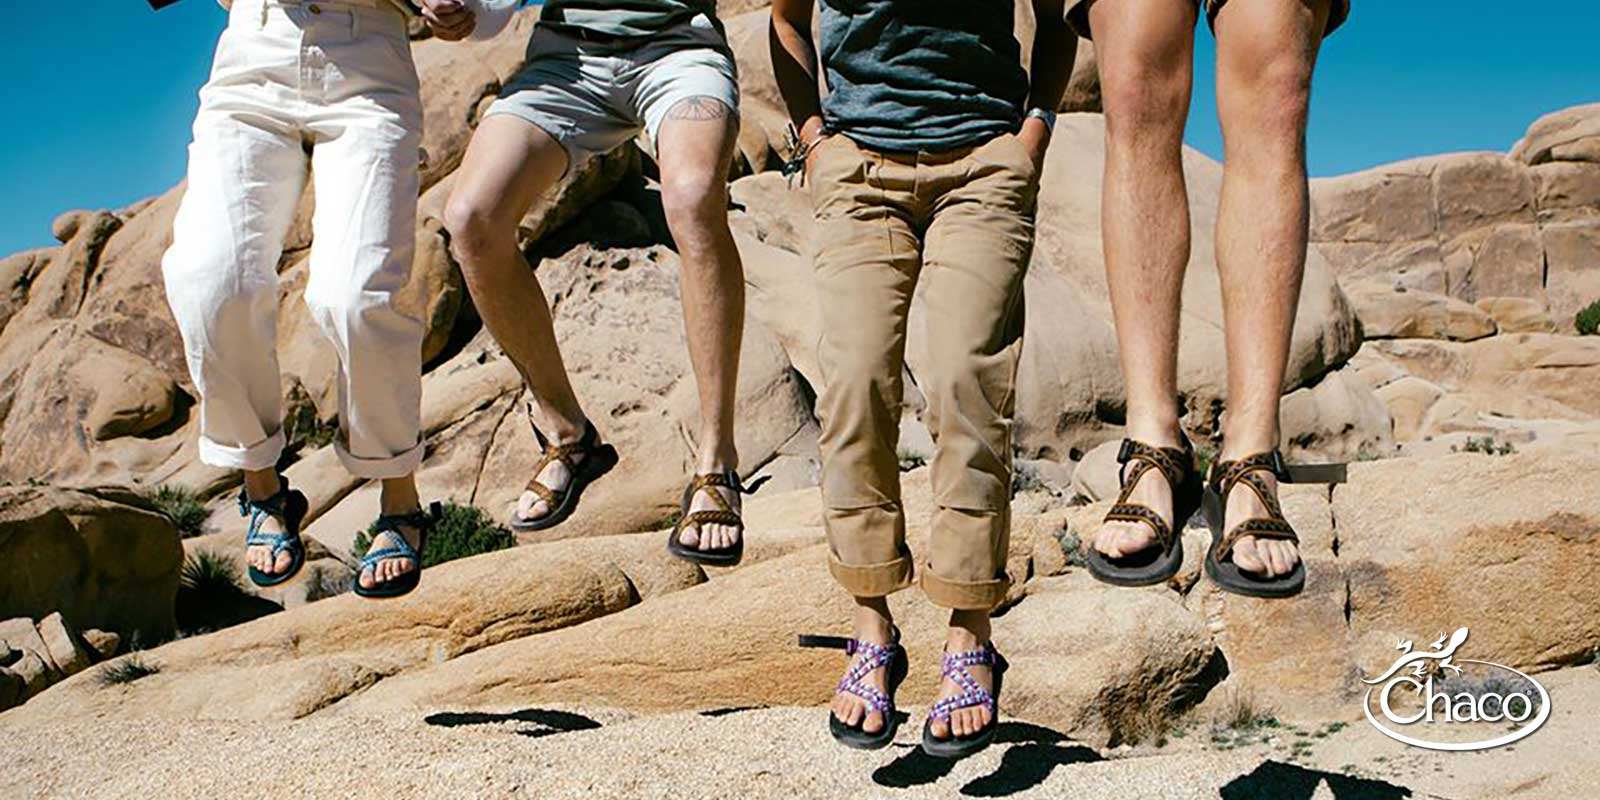 chaco-wide-slider